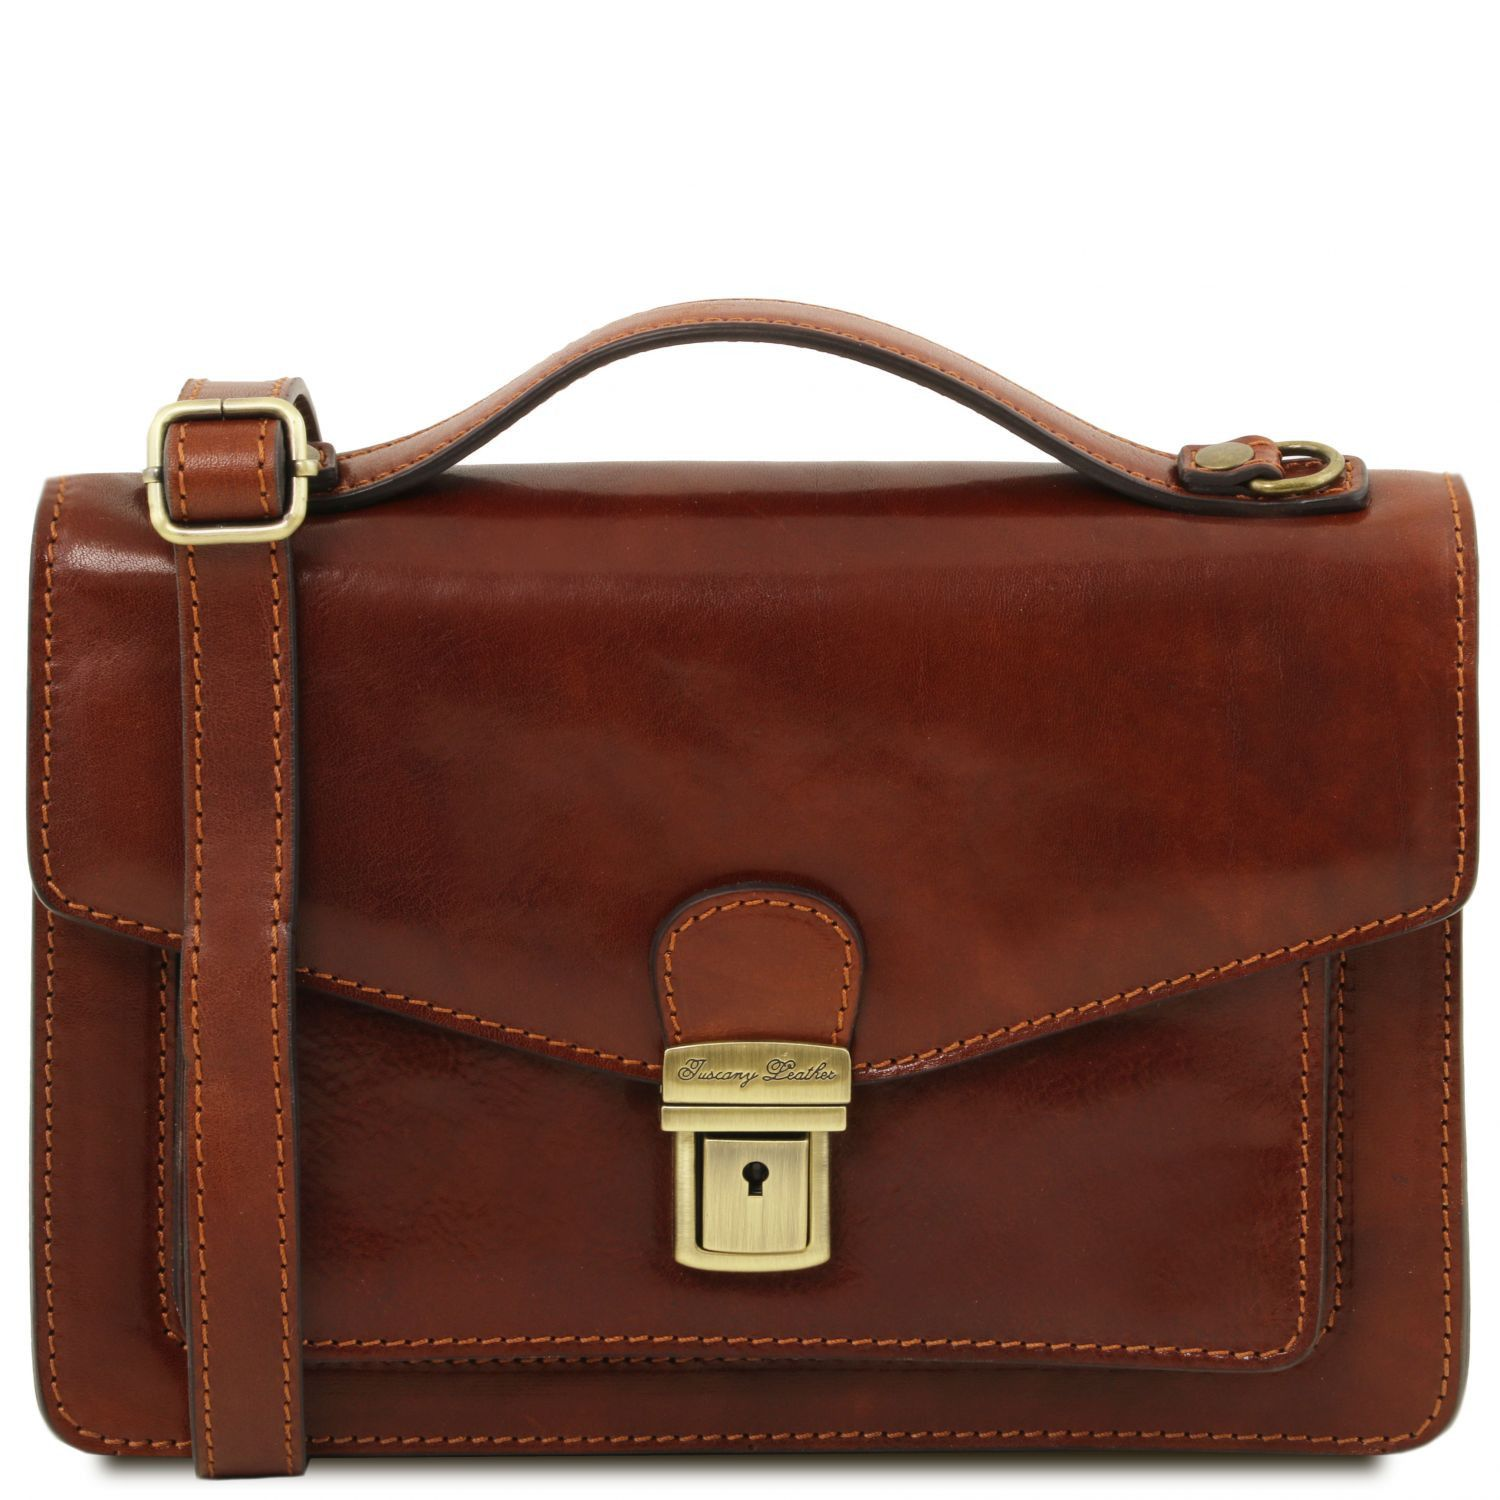 Eric - Leather Crossbody Bag (TL141443) - Leather bags for men | DILUSSOBAGS